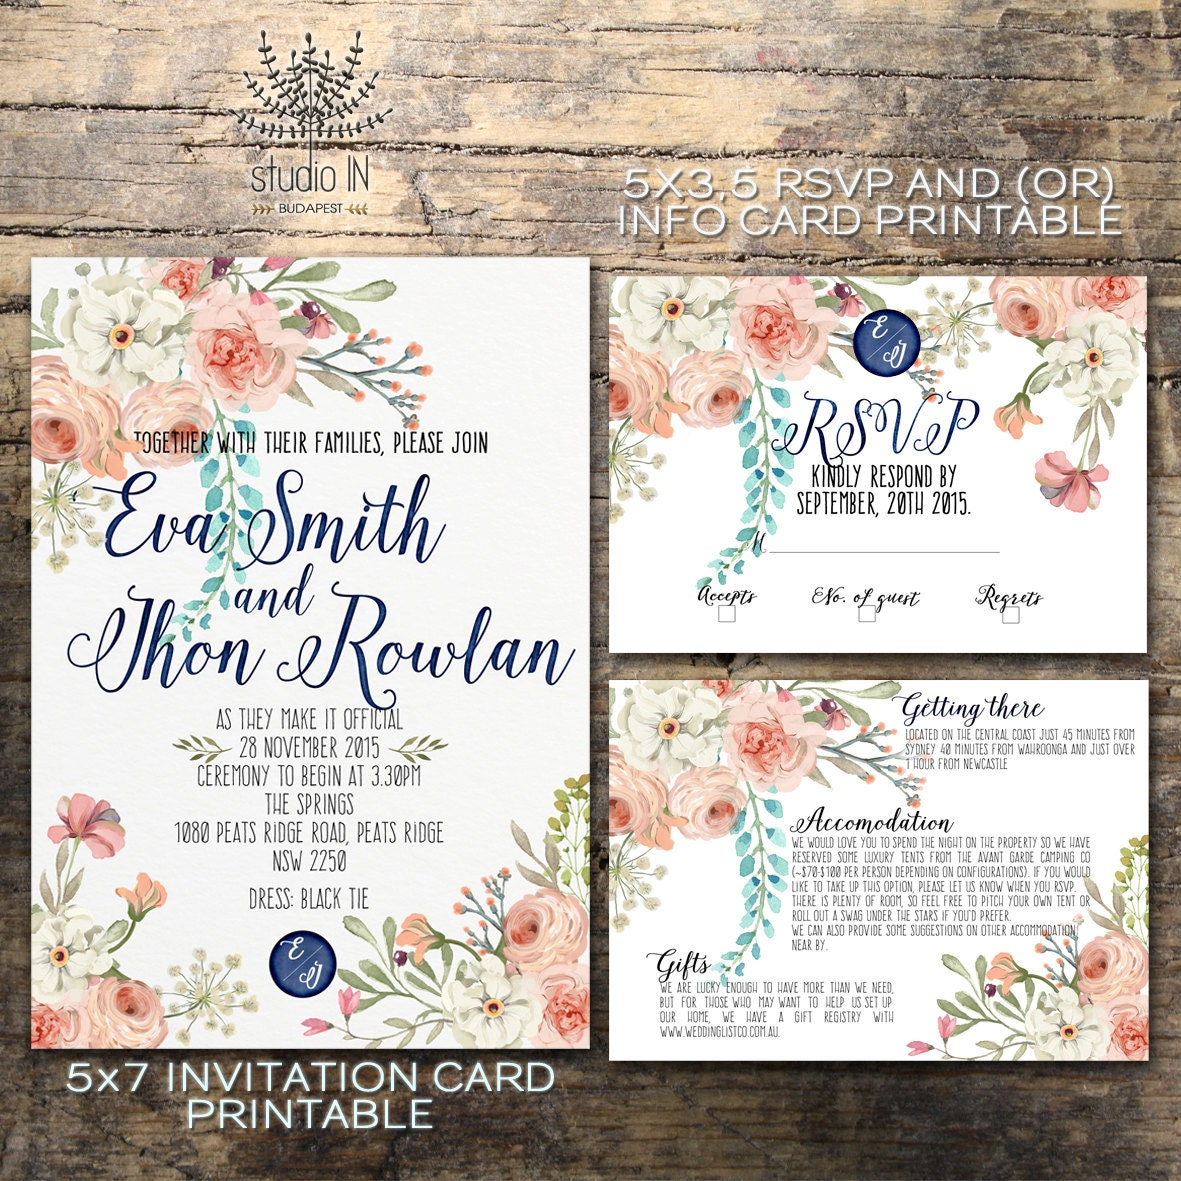 Irresistible image for etsy wedding invitations printable